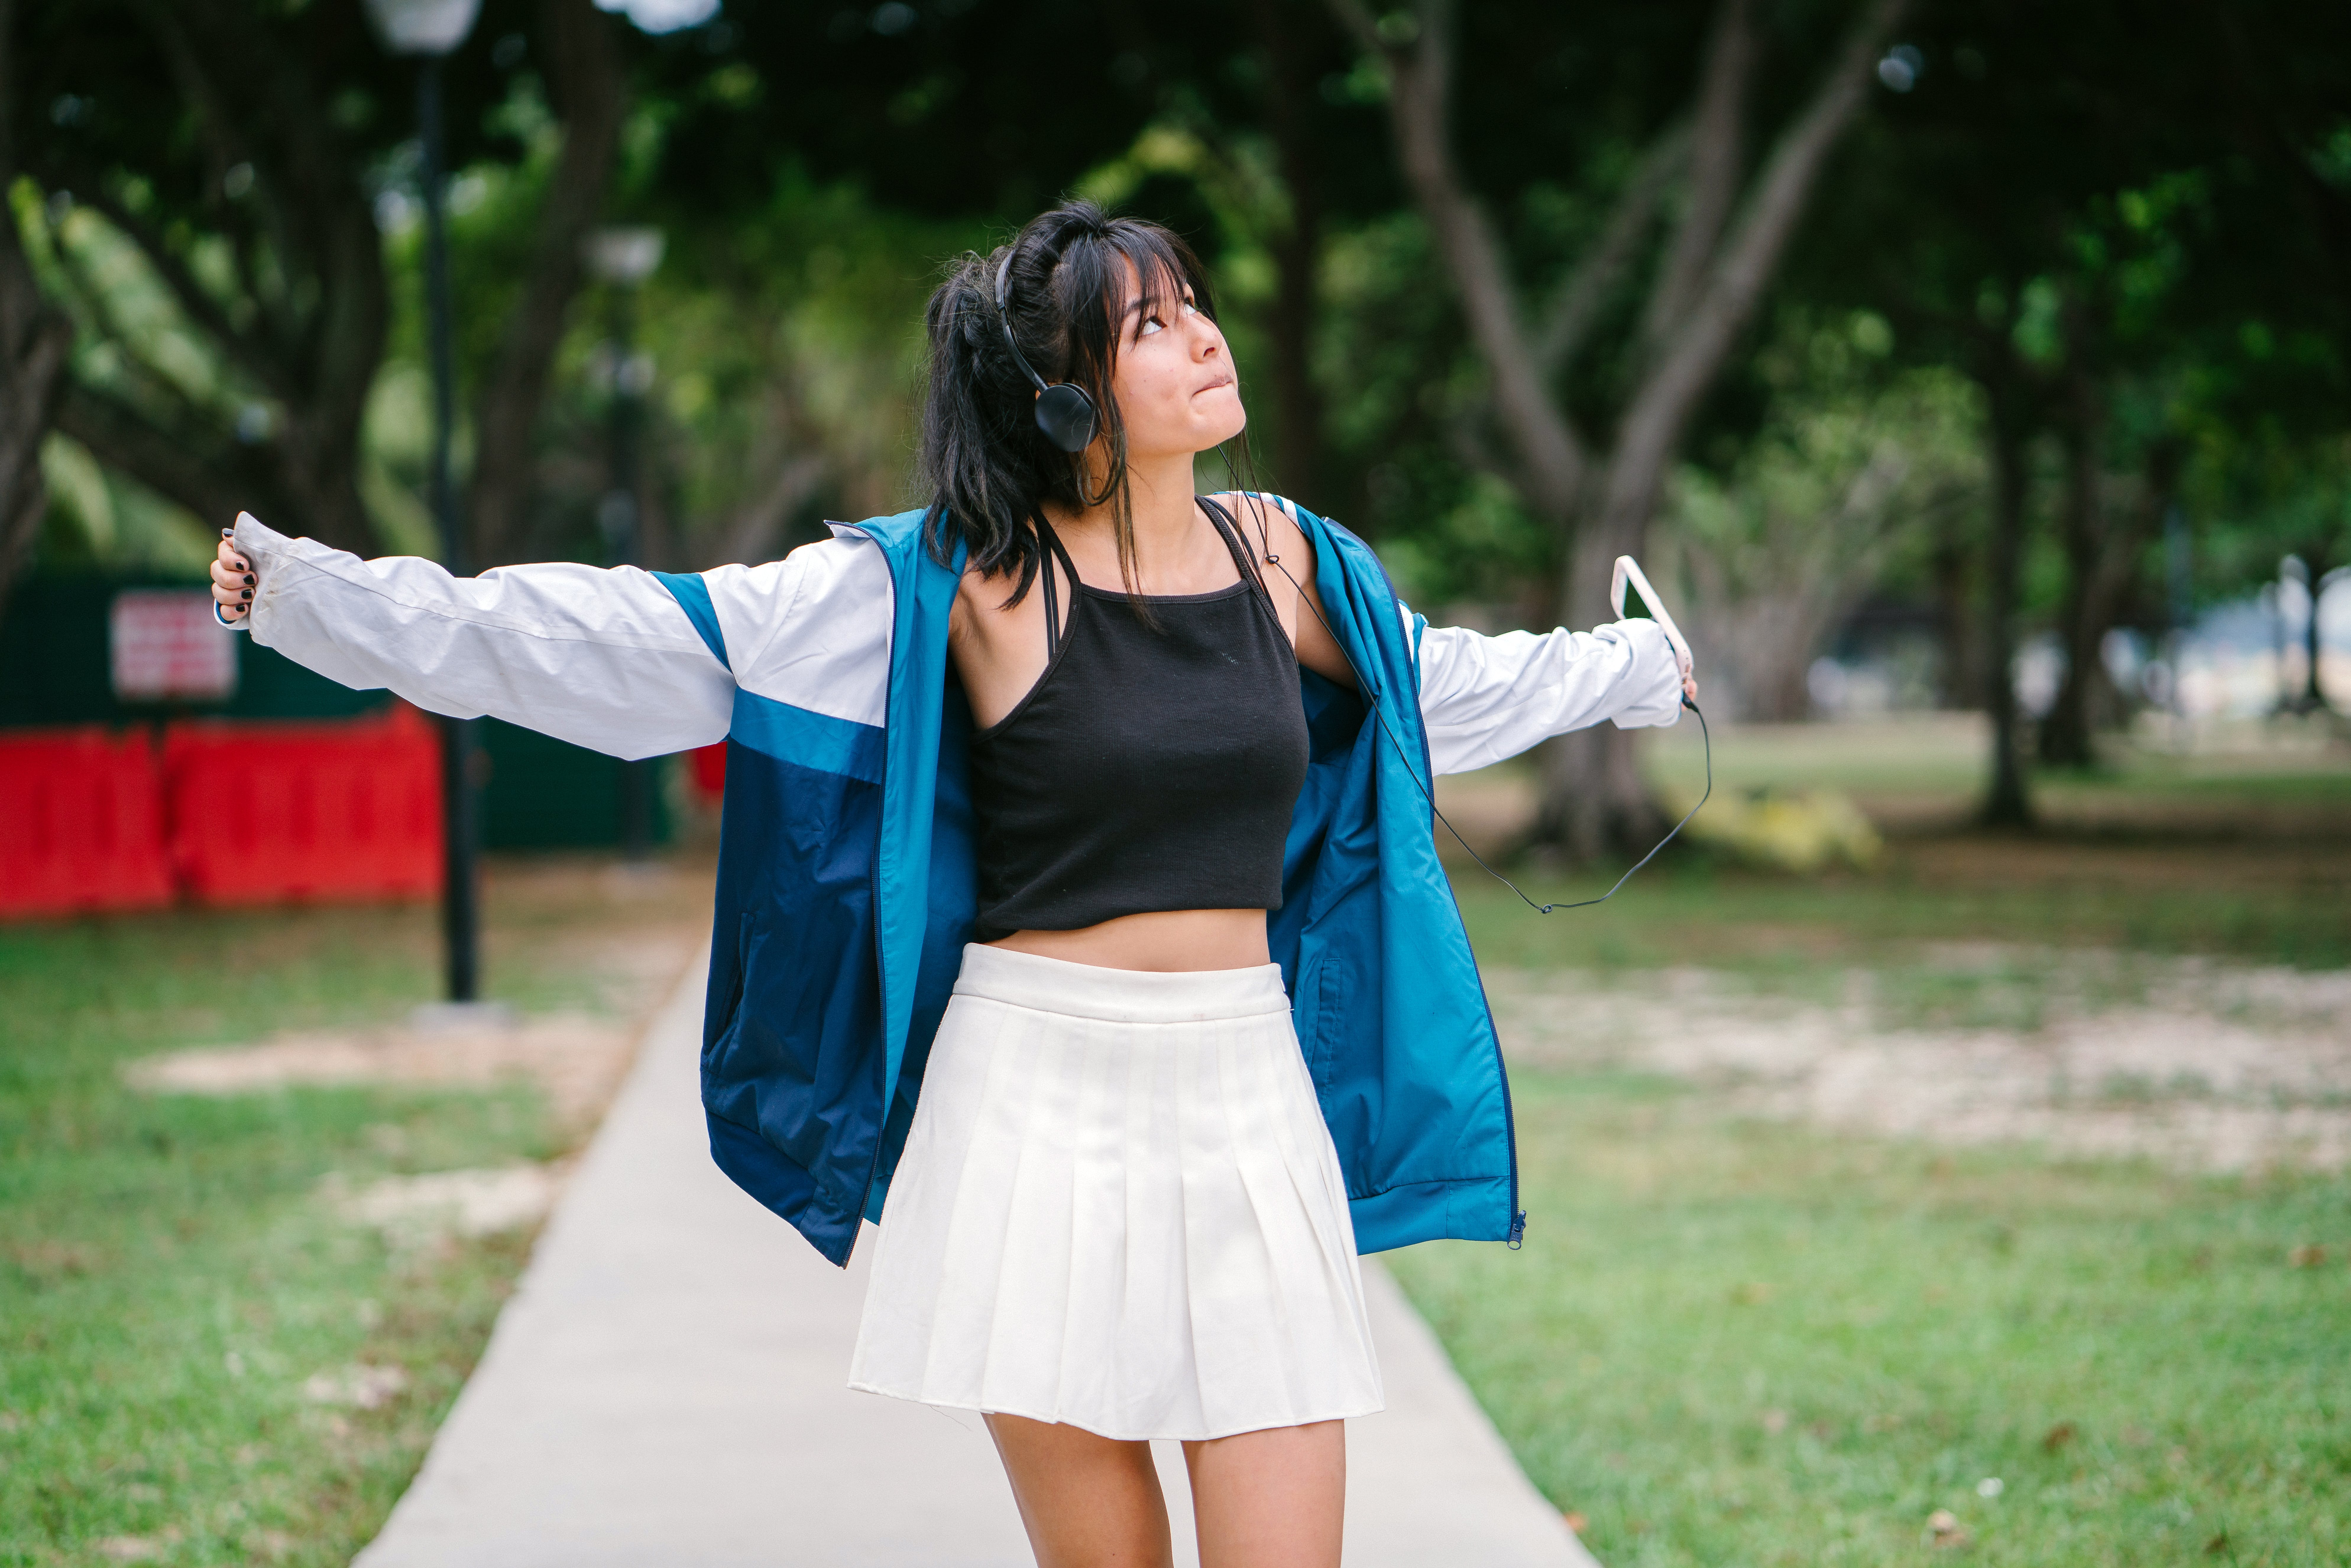 Woman Wearing Jacket, Crop Top and Mini Skirt